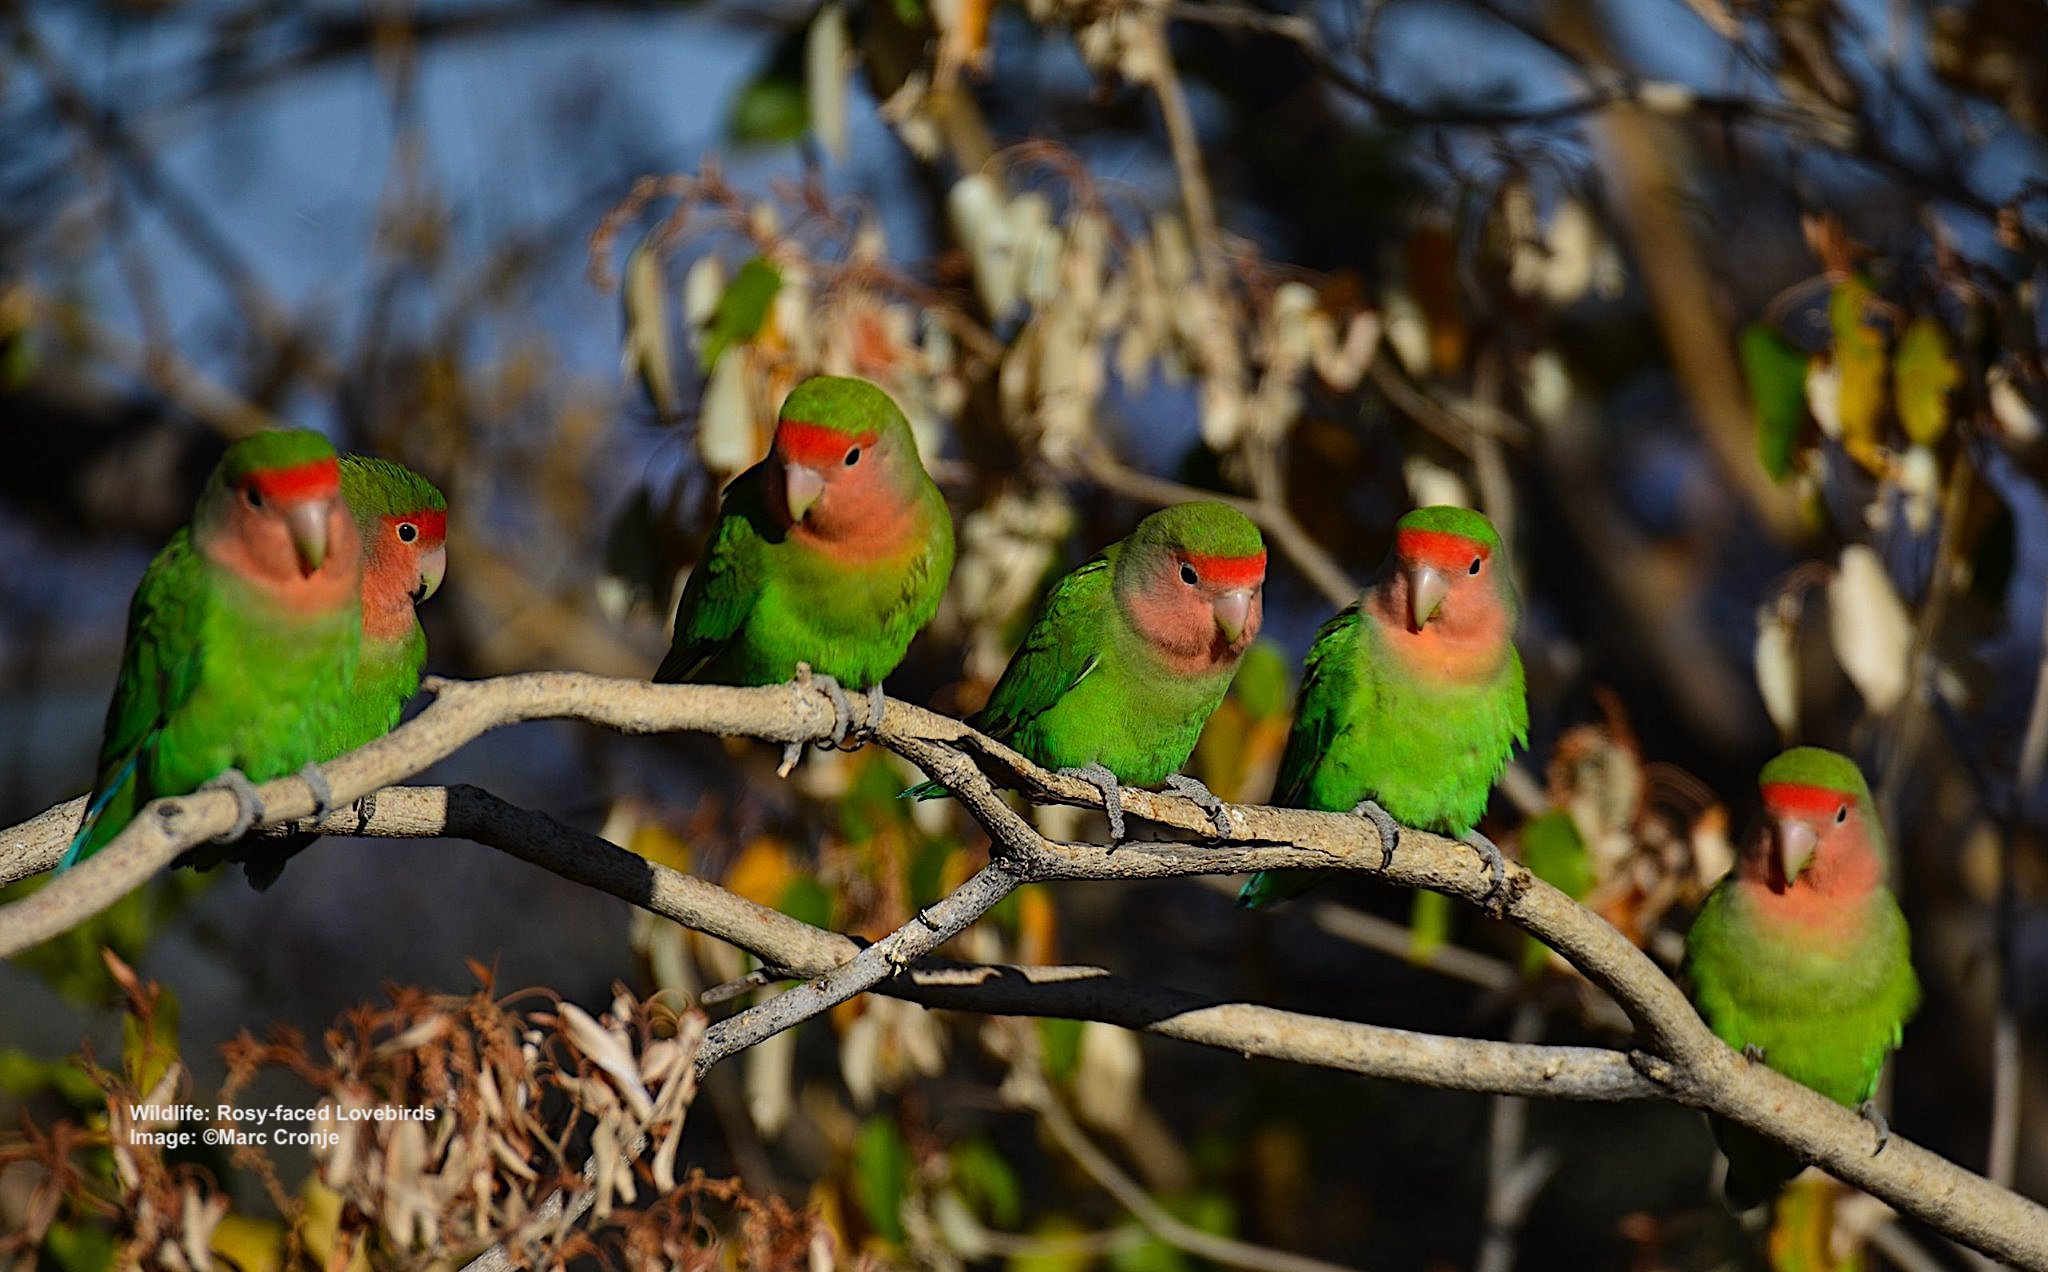 Marc-Cronje-Rosyfaced-Lovebird,birdwatching-Namibia.jpg